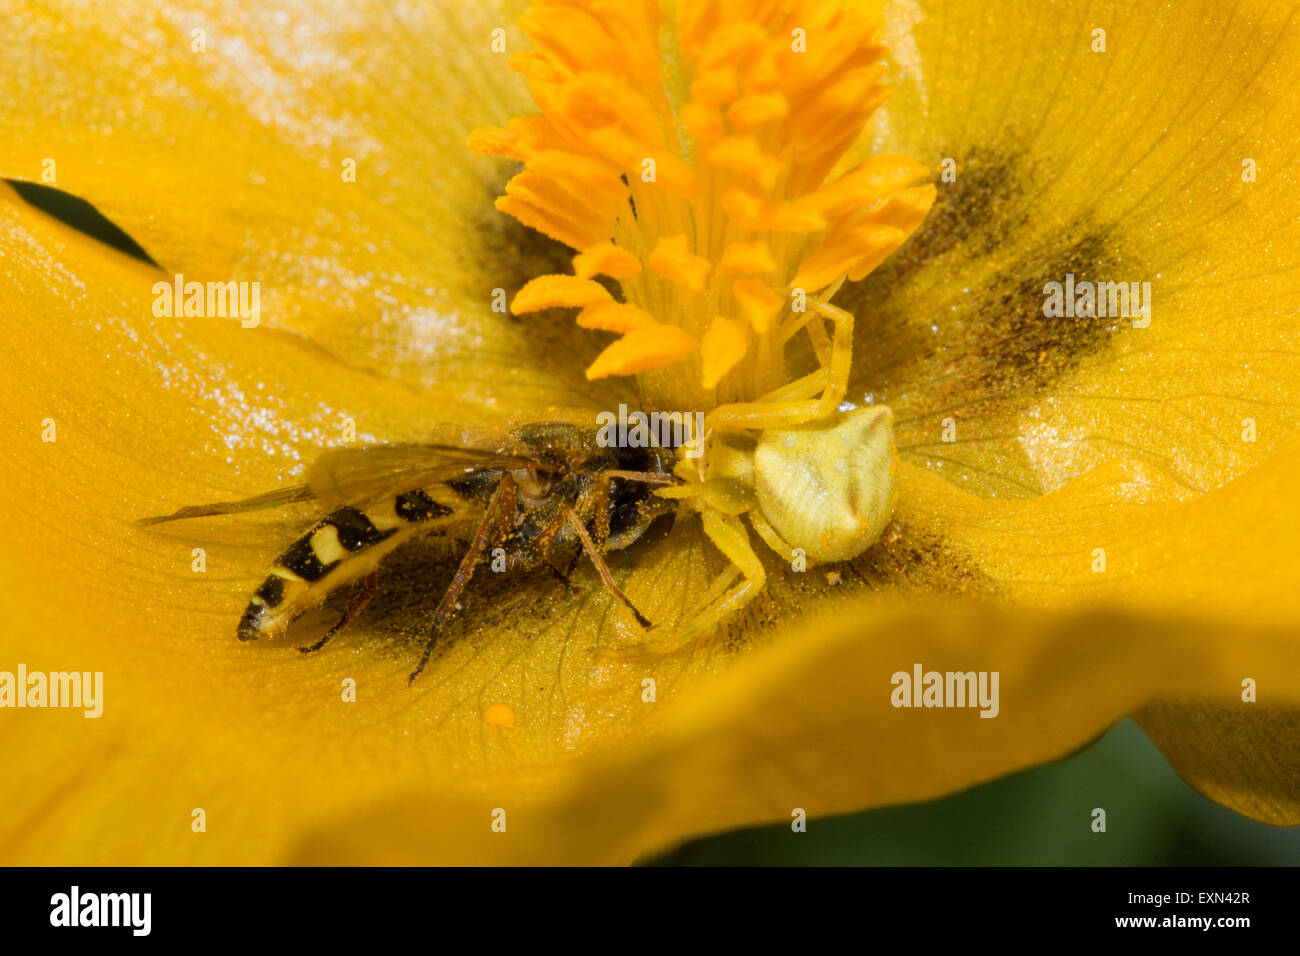 Yellow crab spider (sp) Thomisus onustus, invertebrate eating a hoverfly on a yellow hornpoppy. Lemnos/ Limnos island, - Stock Image